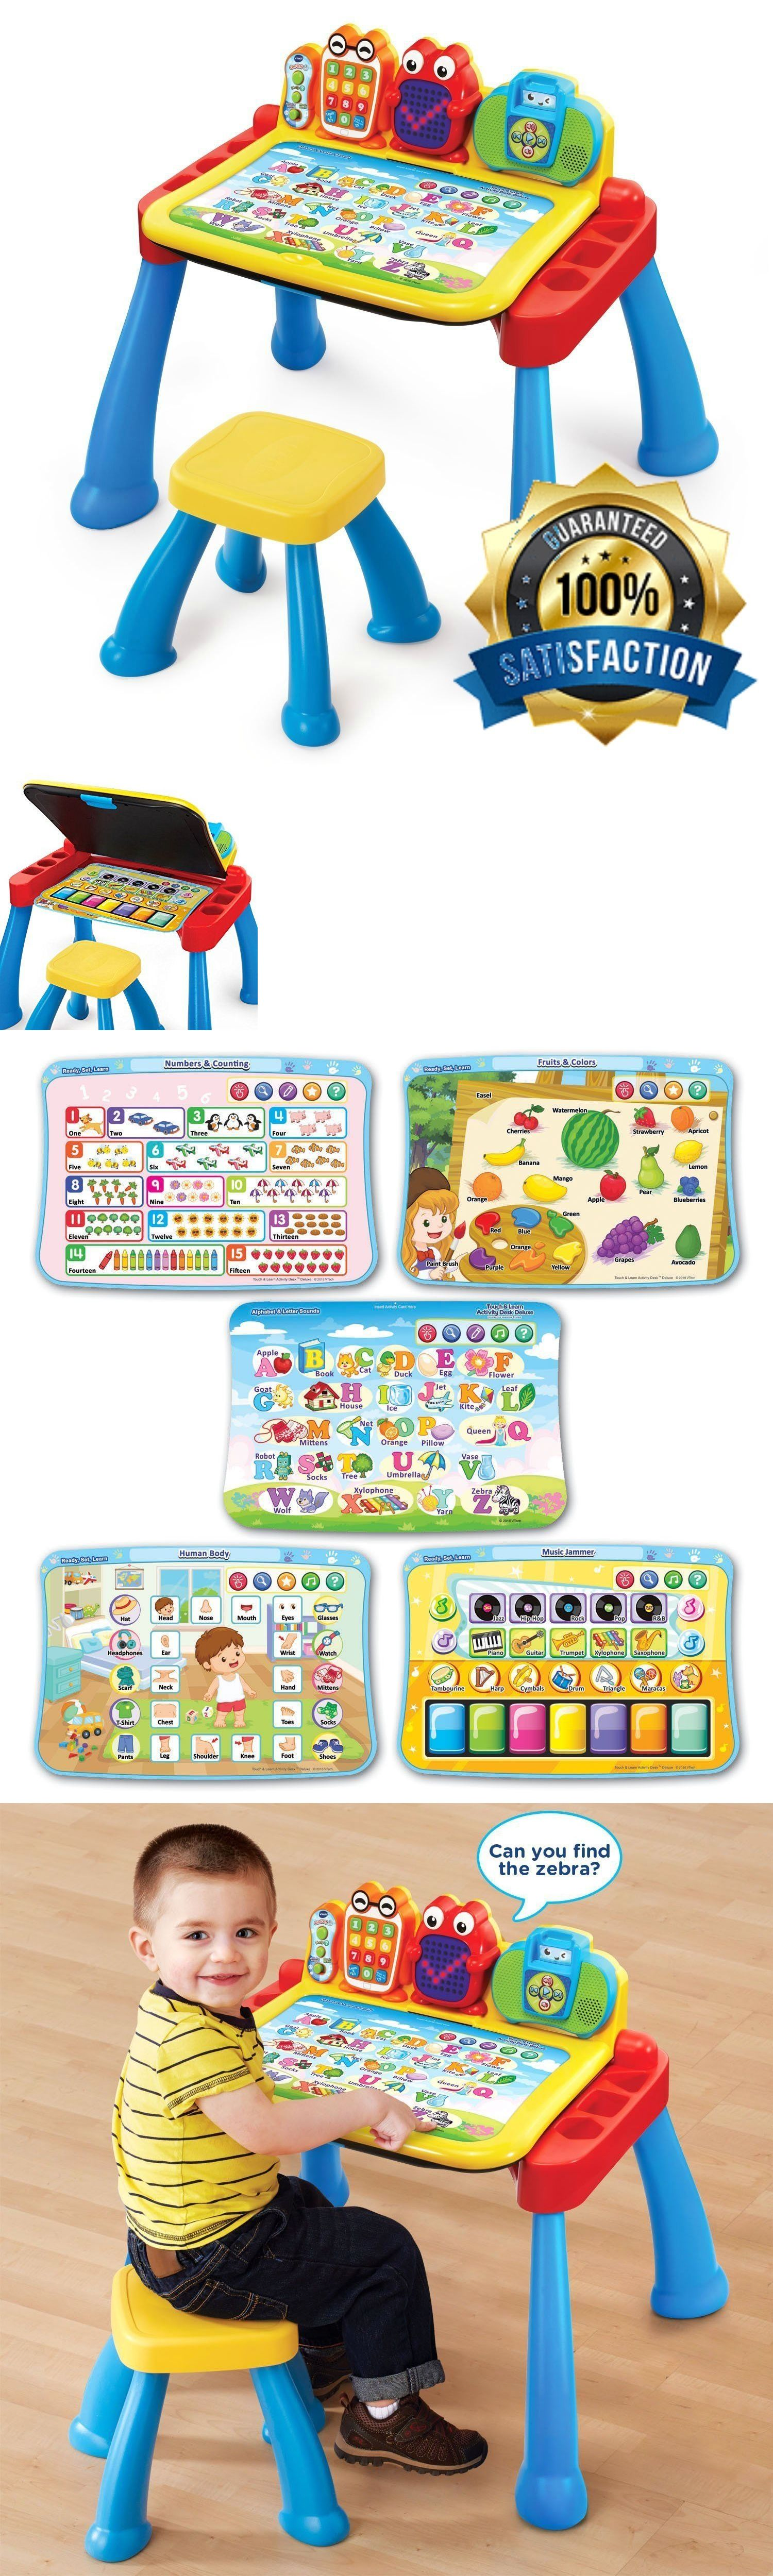 Baby Educational Toys For 2 Year Olds Activity Learning Desk Boys